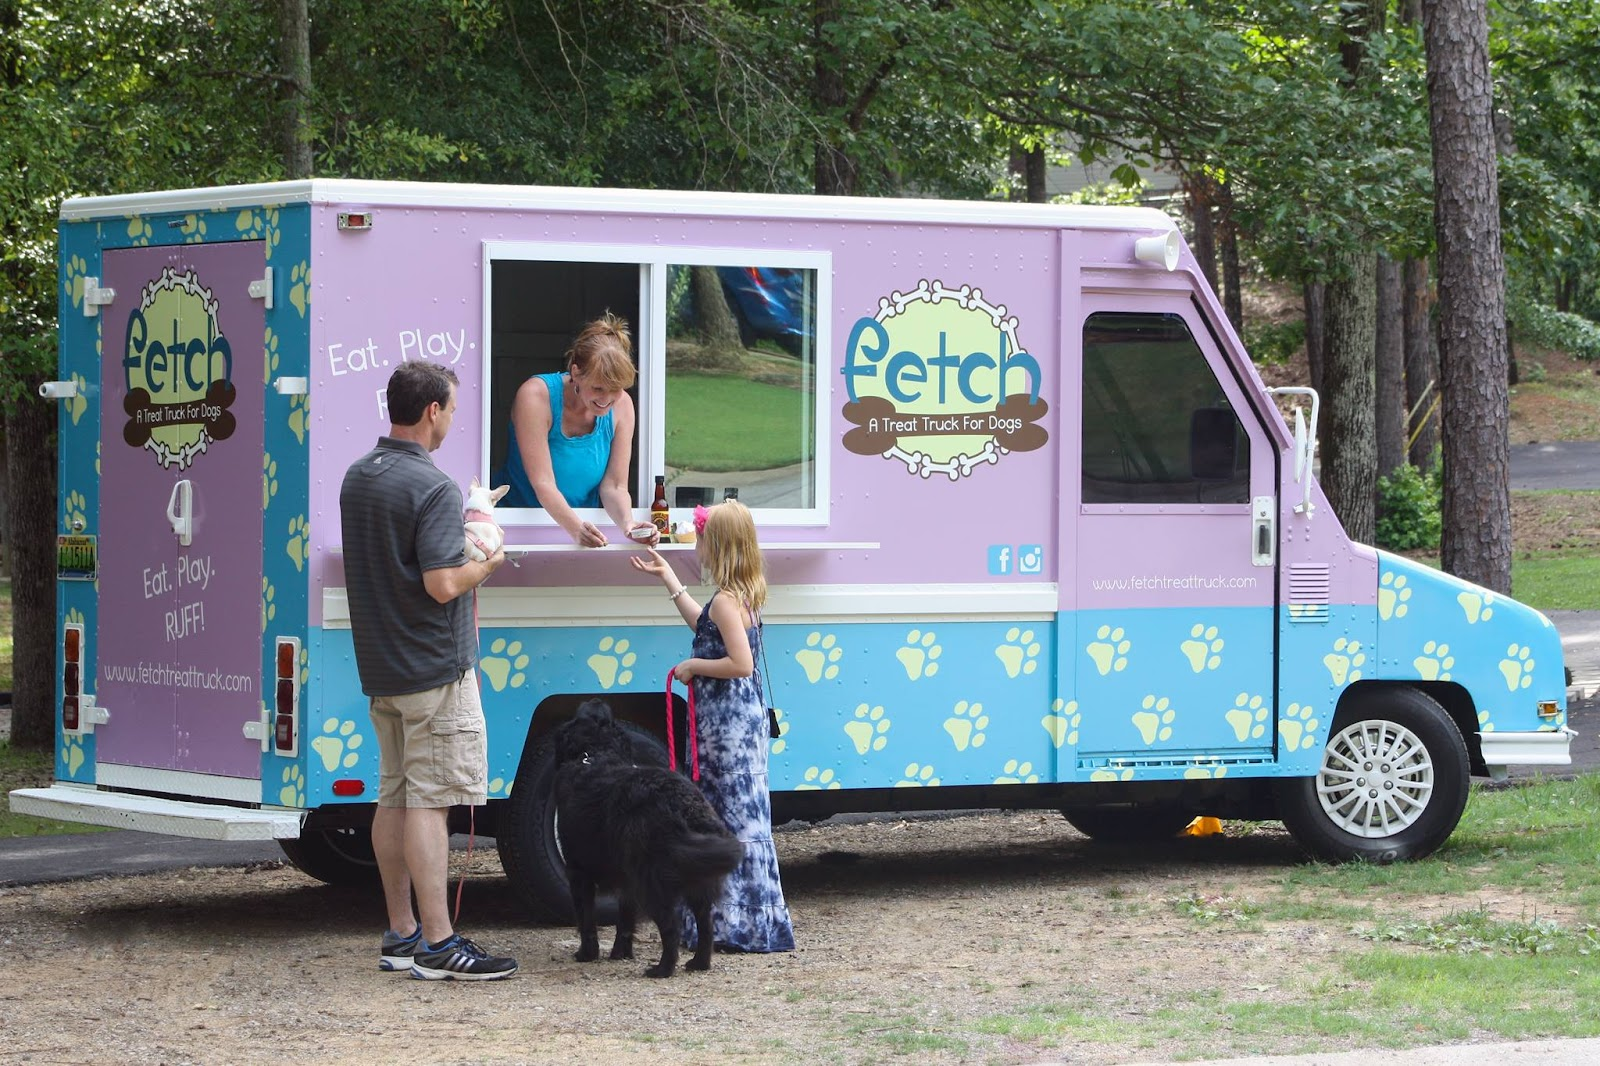 dad and little girl at Fetch treat truck for dogs